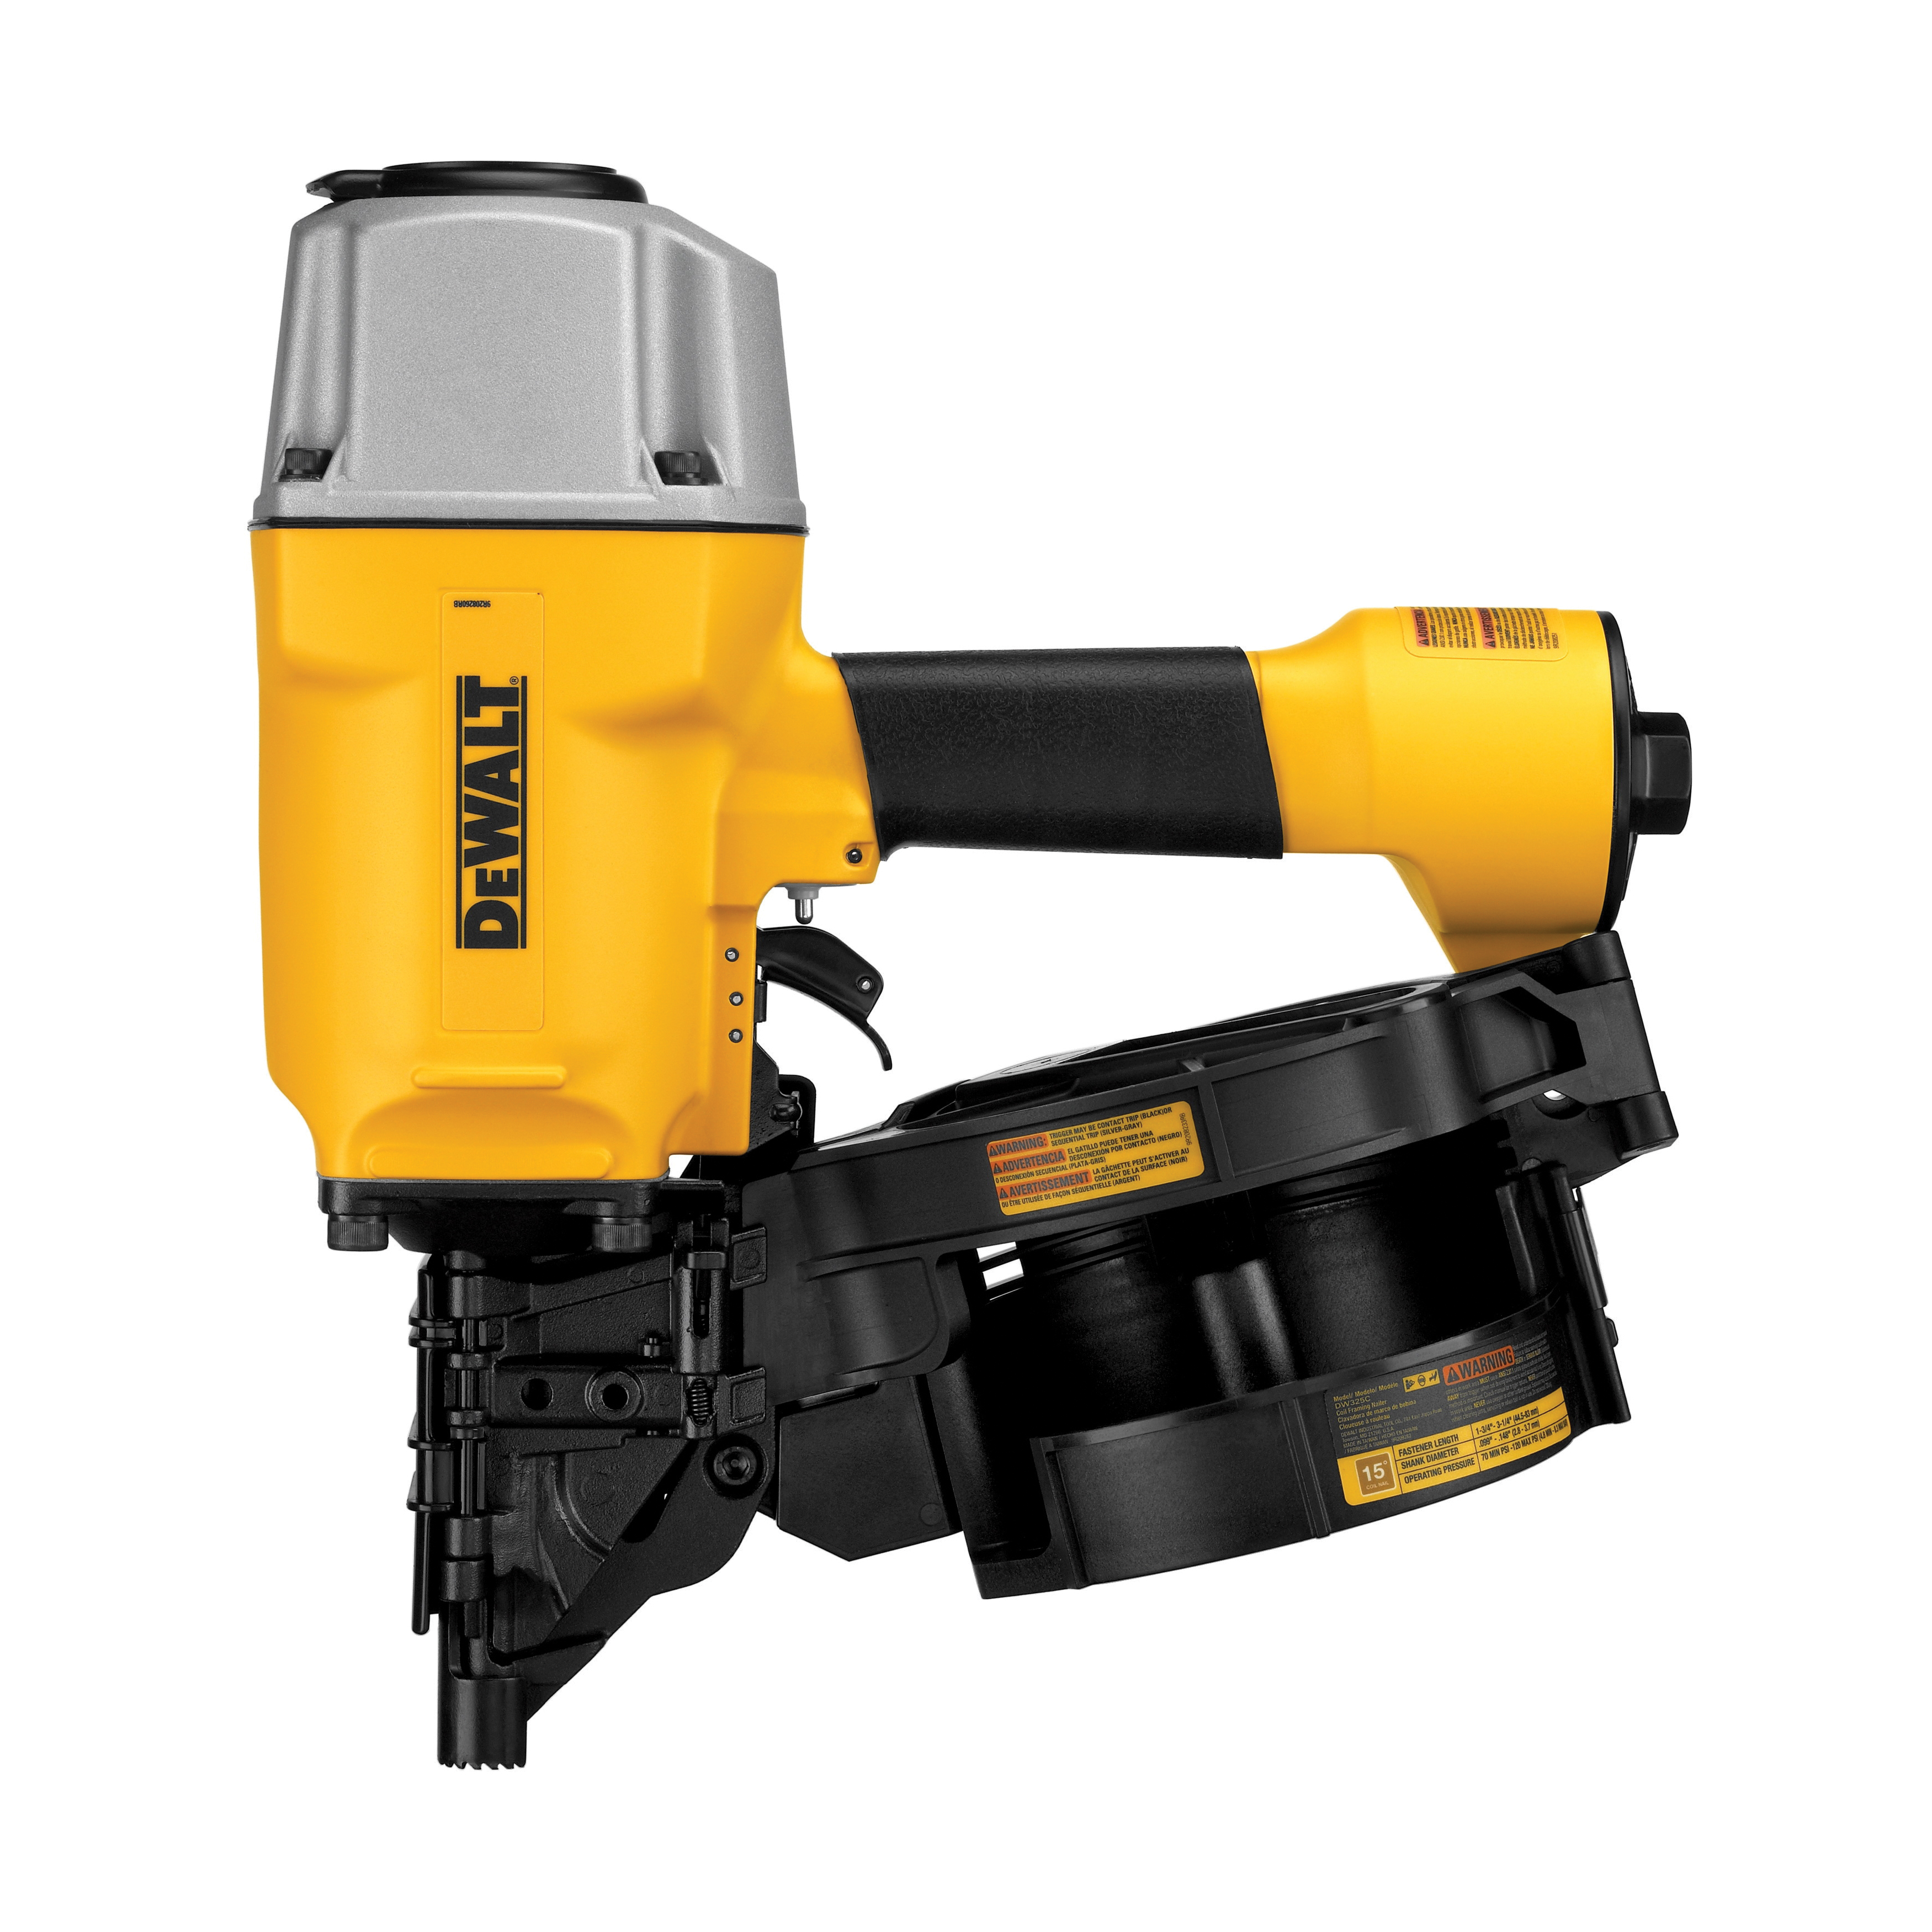 DeWALT® DW325C Heavy Duty Coil Framing Nailer, 2 to 3-1/4 in Fastener, Coil Collation, 200 Nails Magazine, 70 to 120 psi